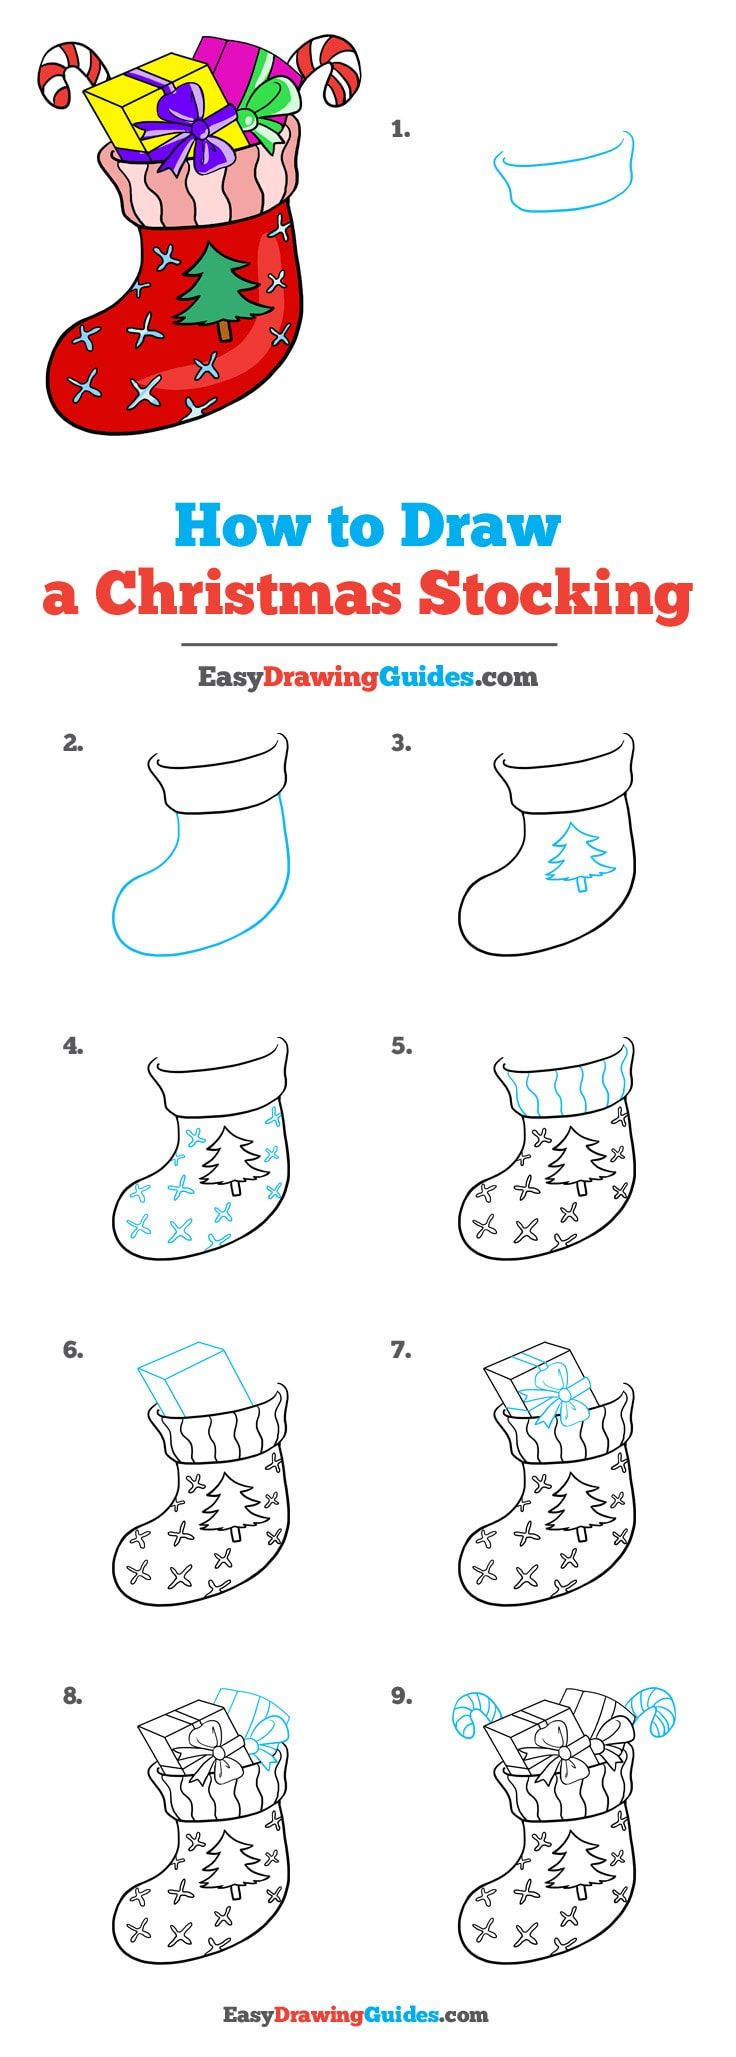 How to Draw a Christmas Stocking (With images) Easy